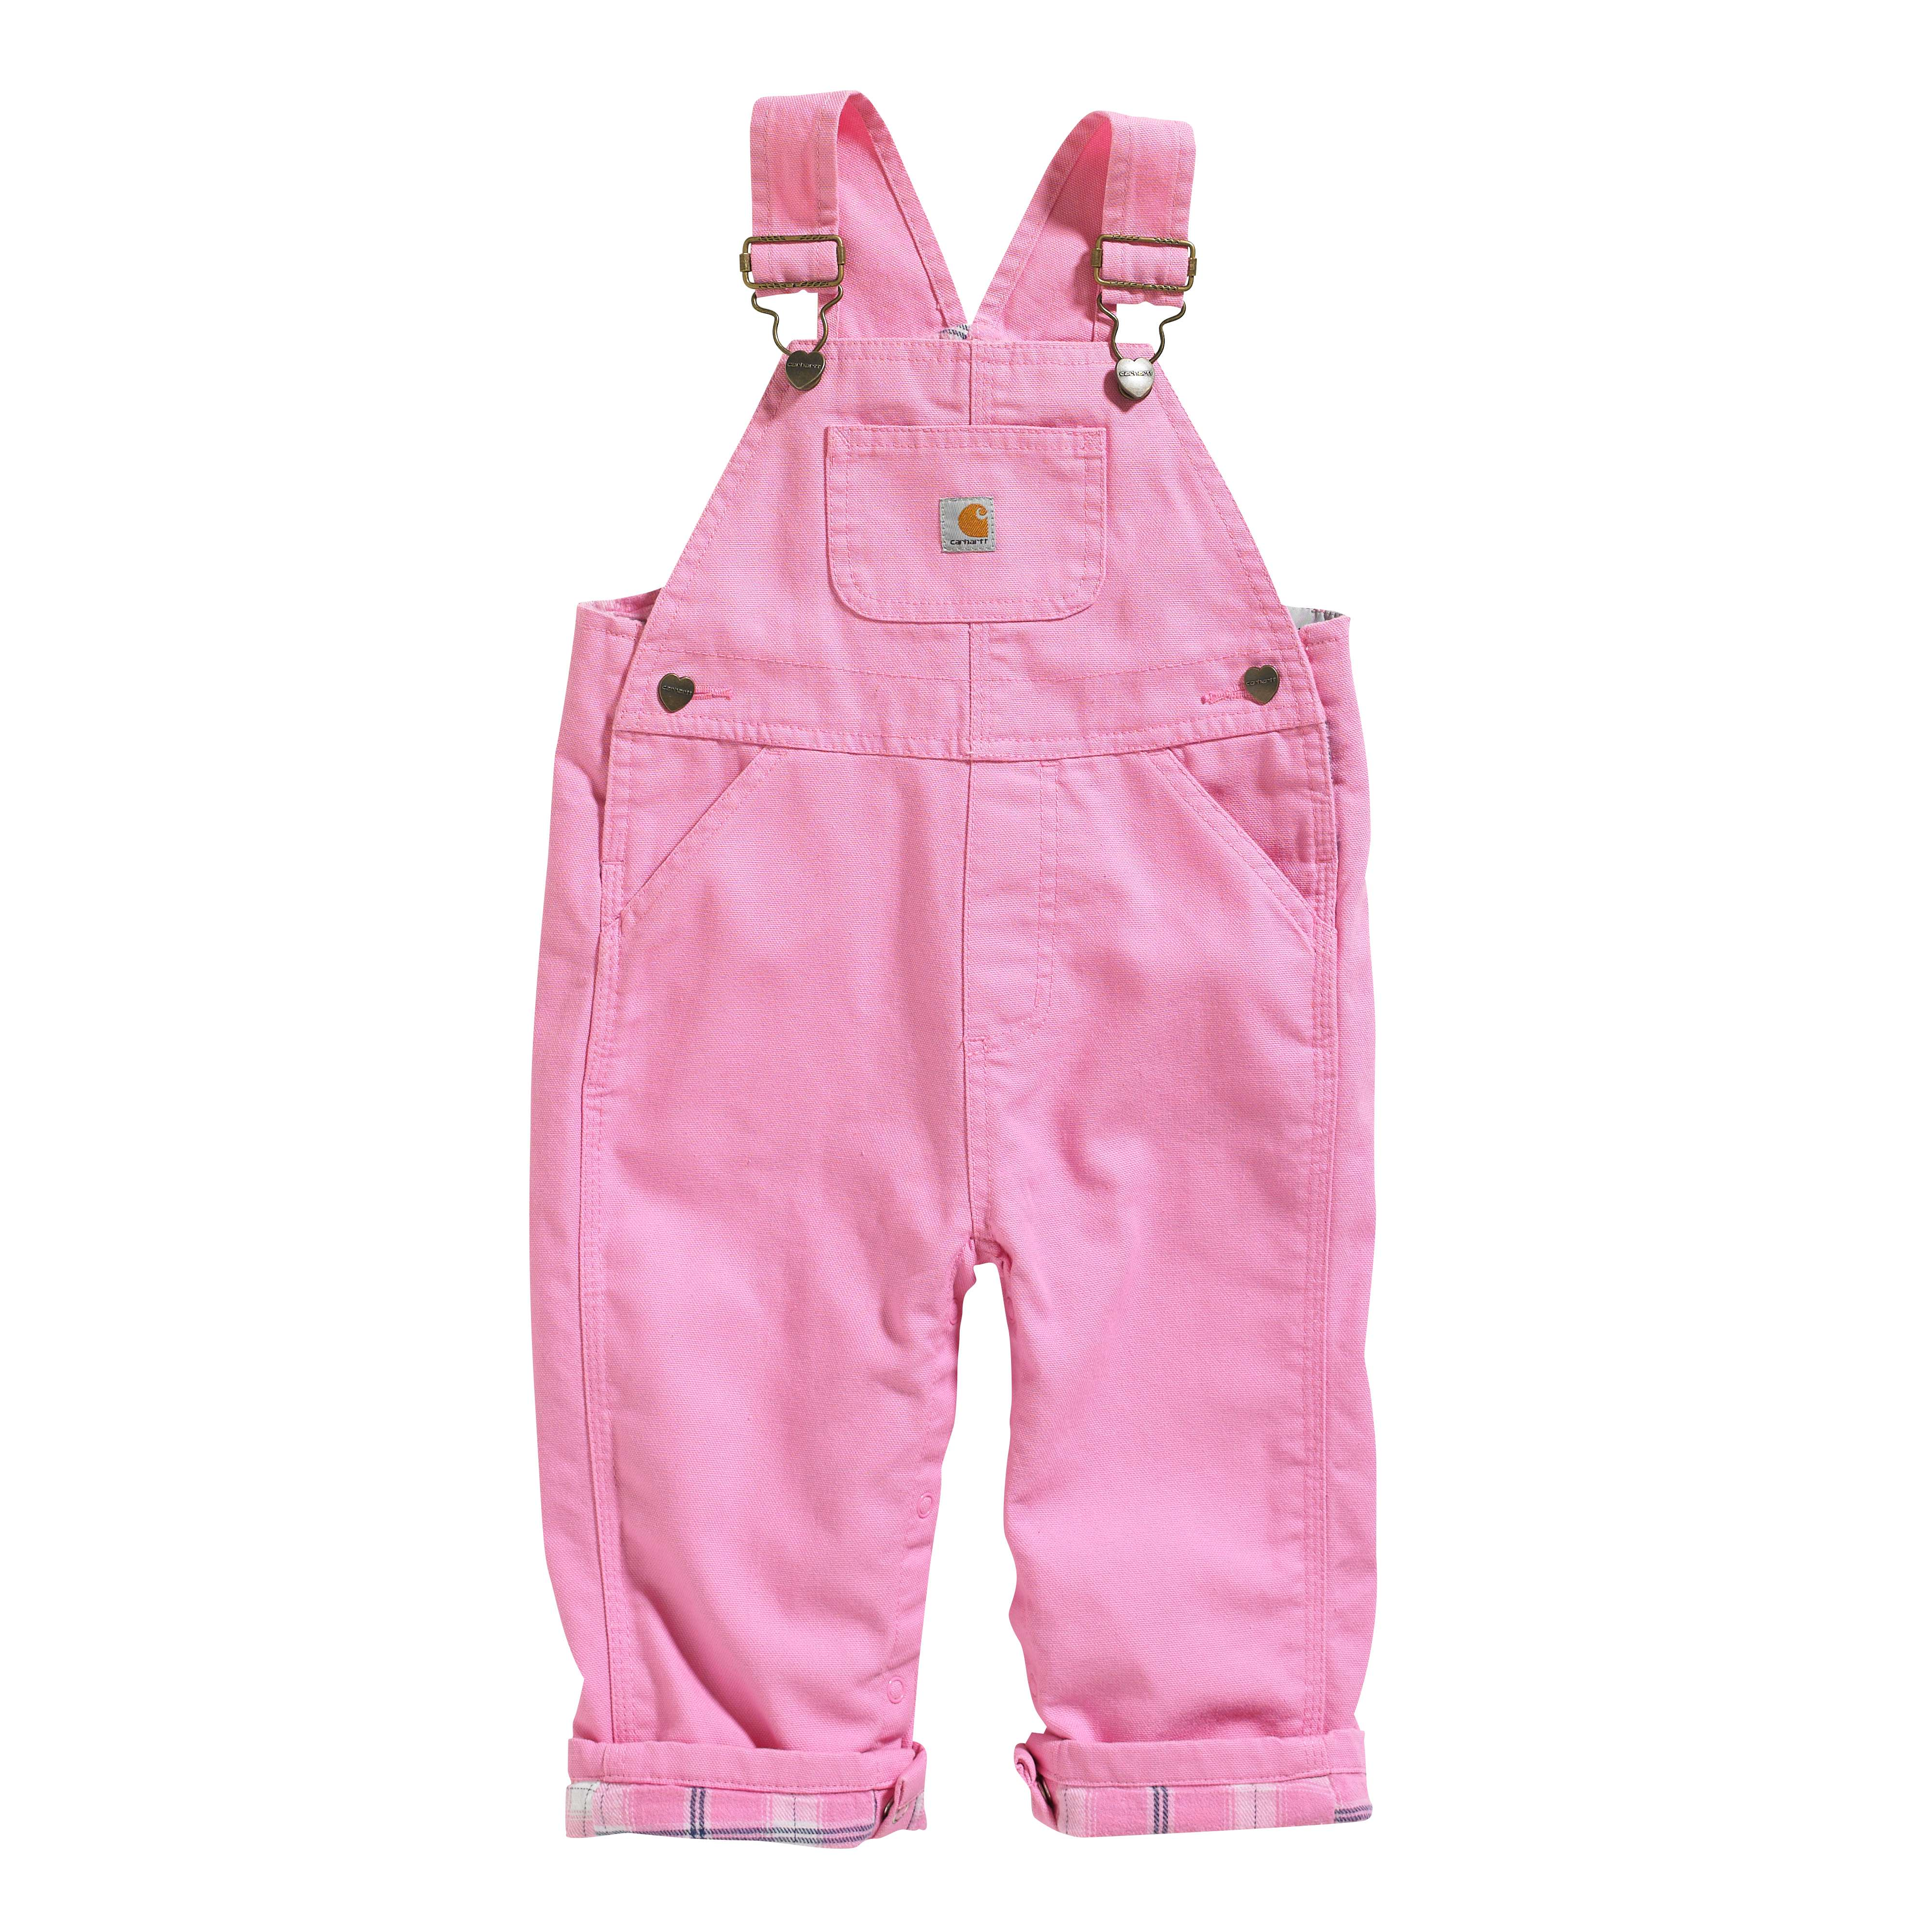 Carhartt Canvas Overall Flannel-Lined